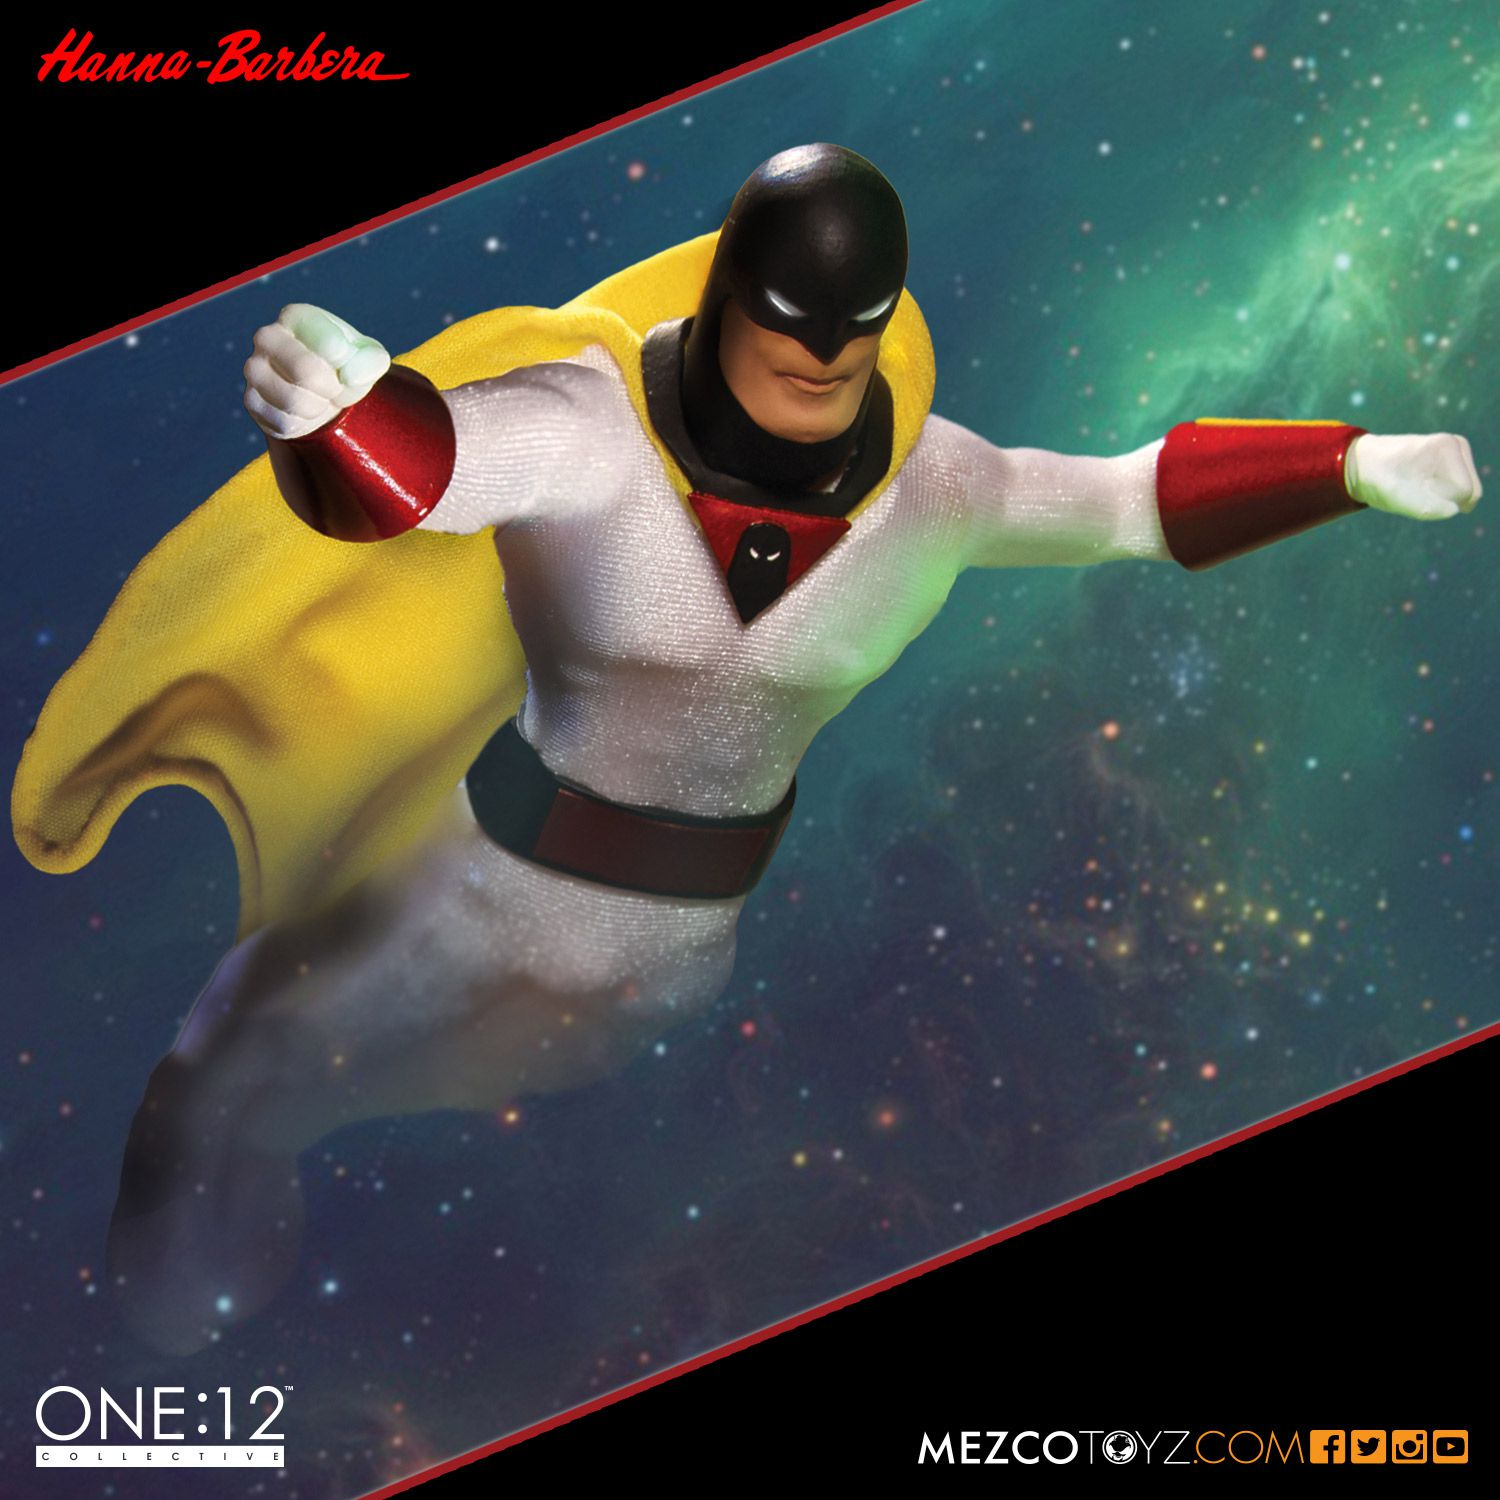 Mezco Toyz Space Ghost One:12 Collective Figure Pre-Orders